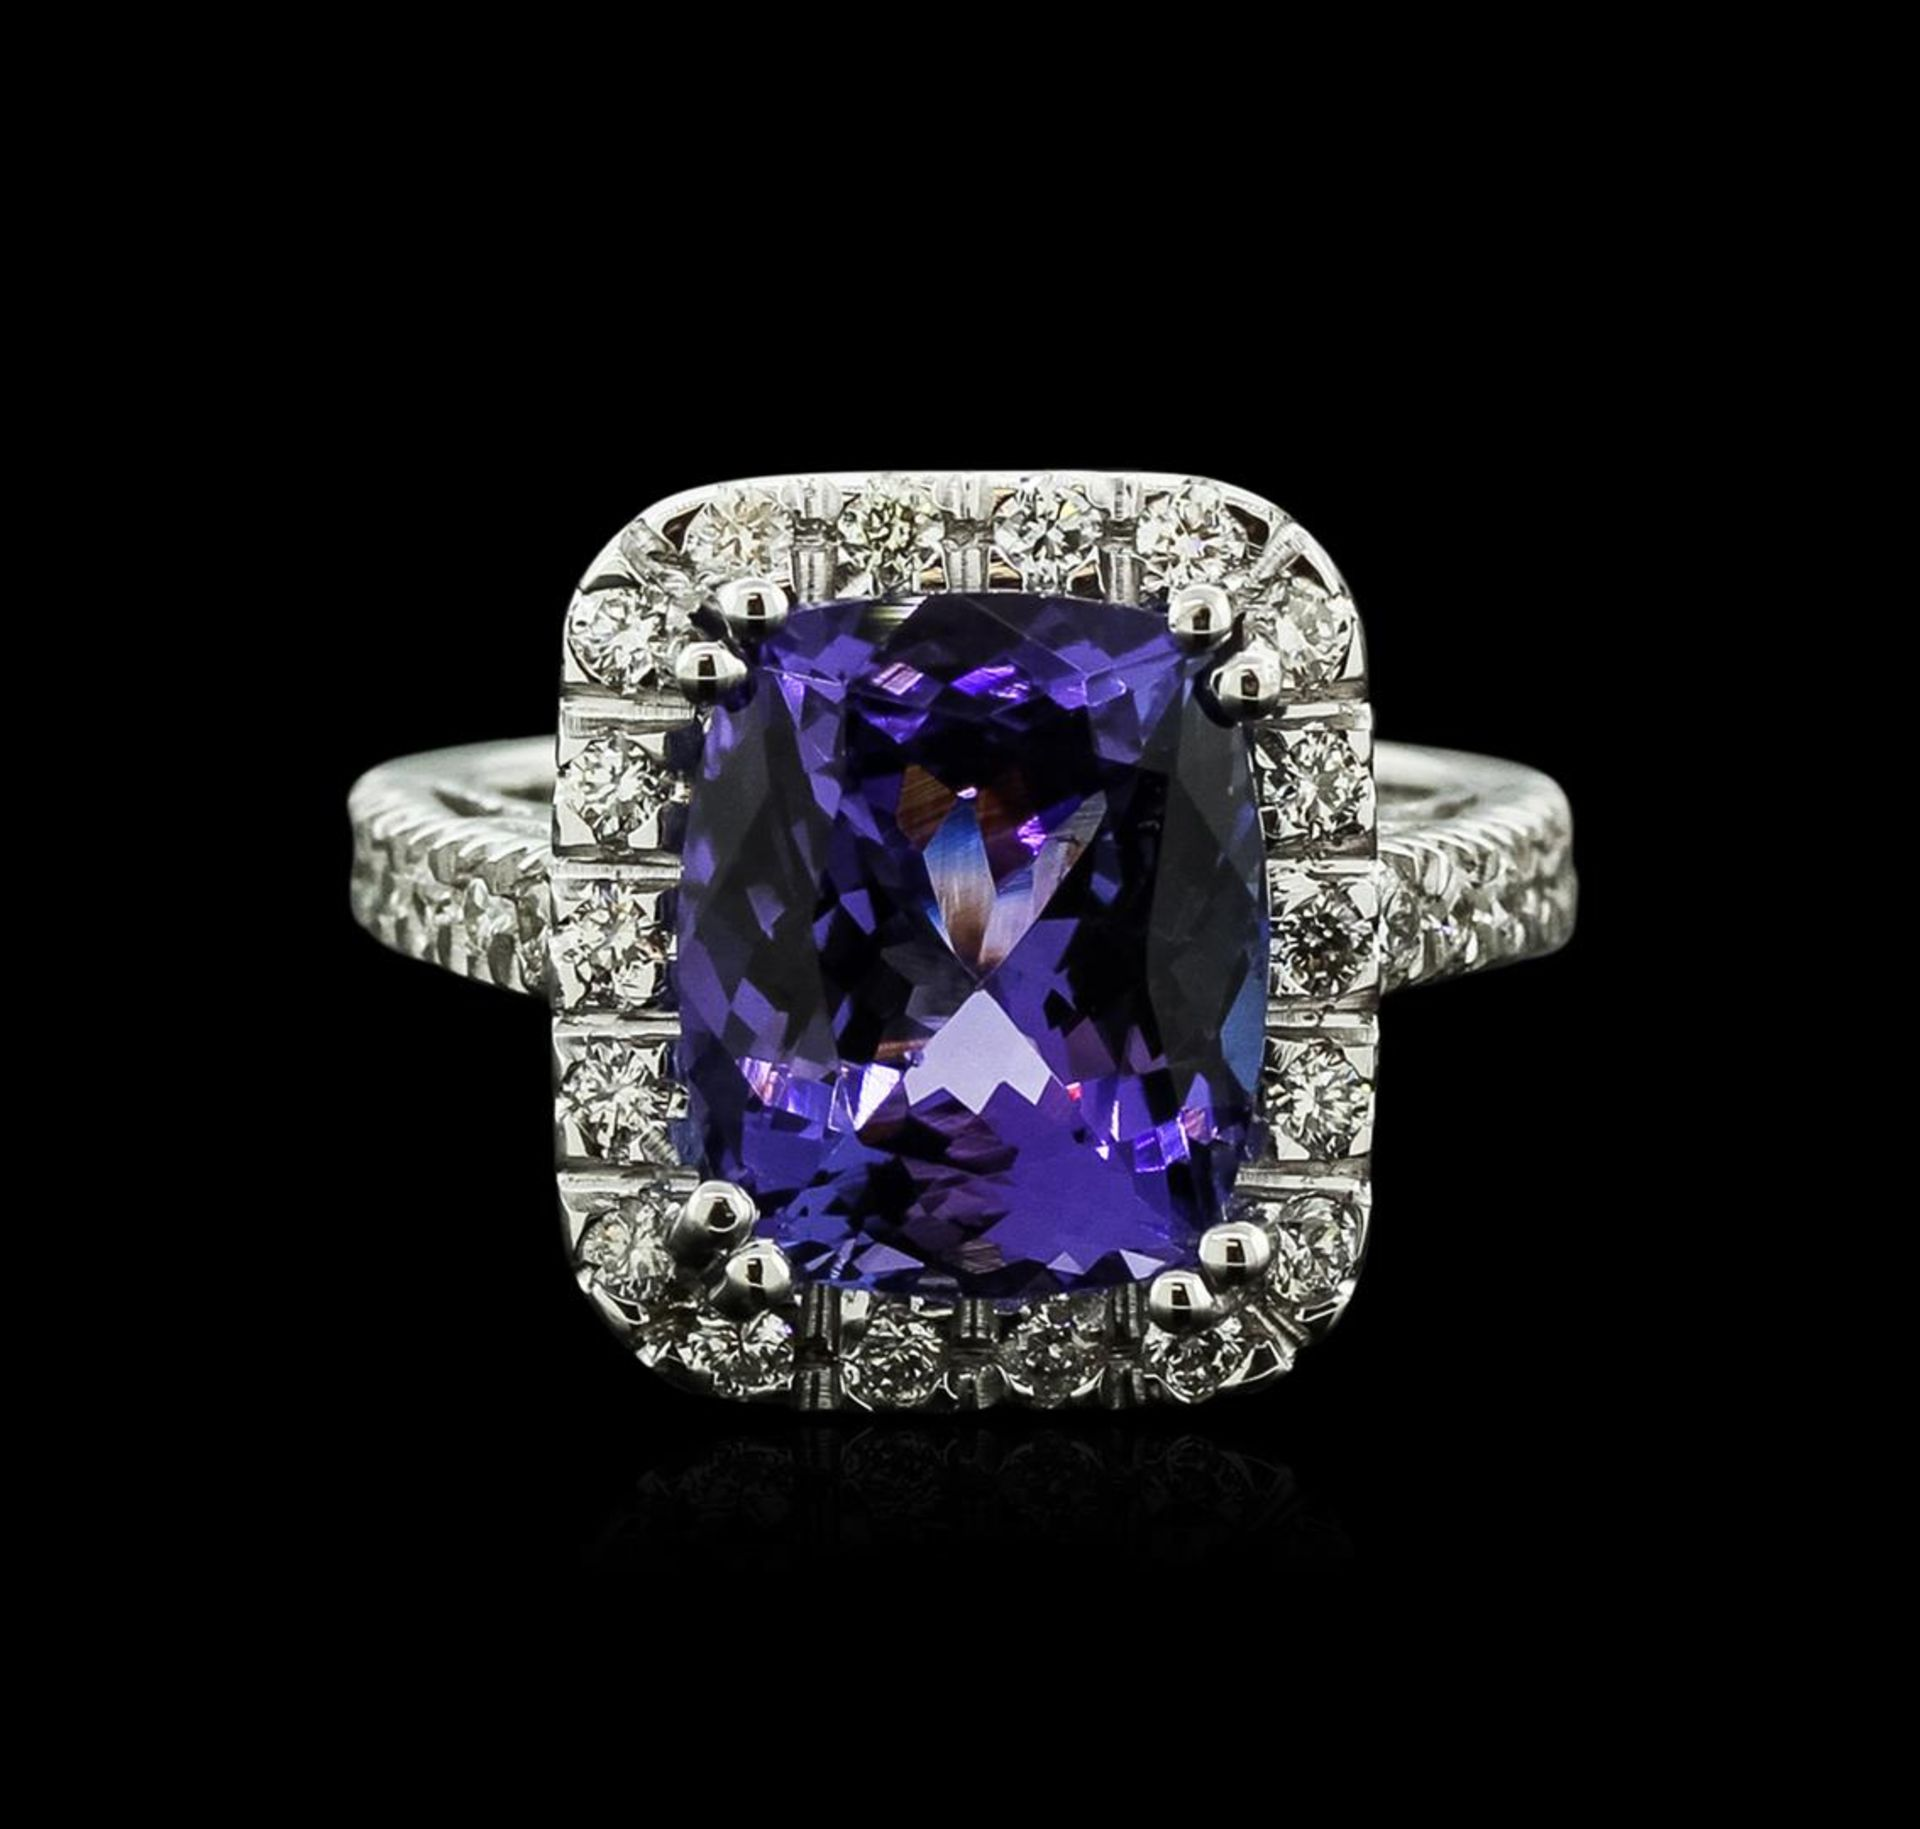 14KT White Gold 6.14 ctw Tanzanite and Diamond Ring - Image 2 of 4